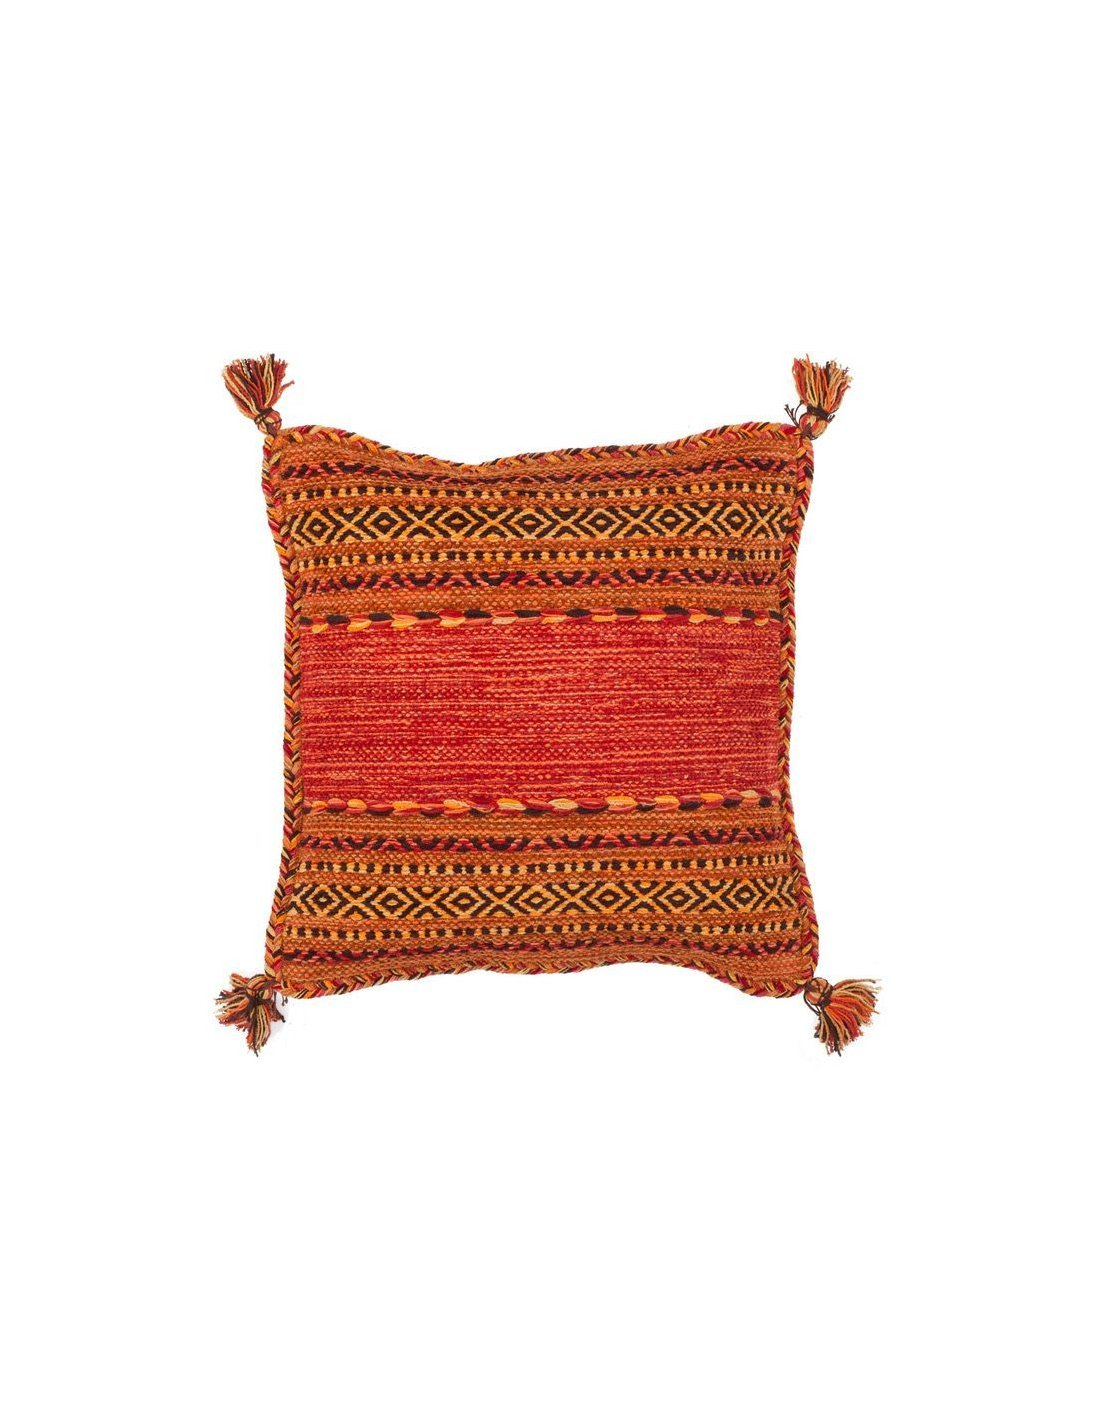 Exterieur Kayoom Coussin Alhambra Pillow 335 Terra Kayoom à 48 90 Chez